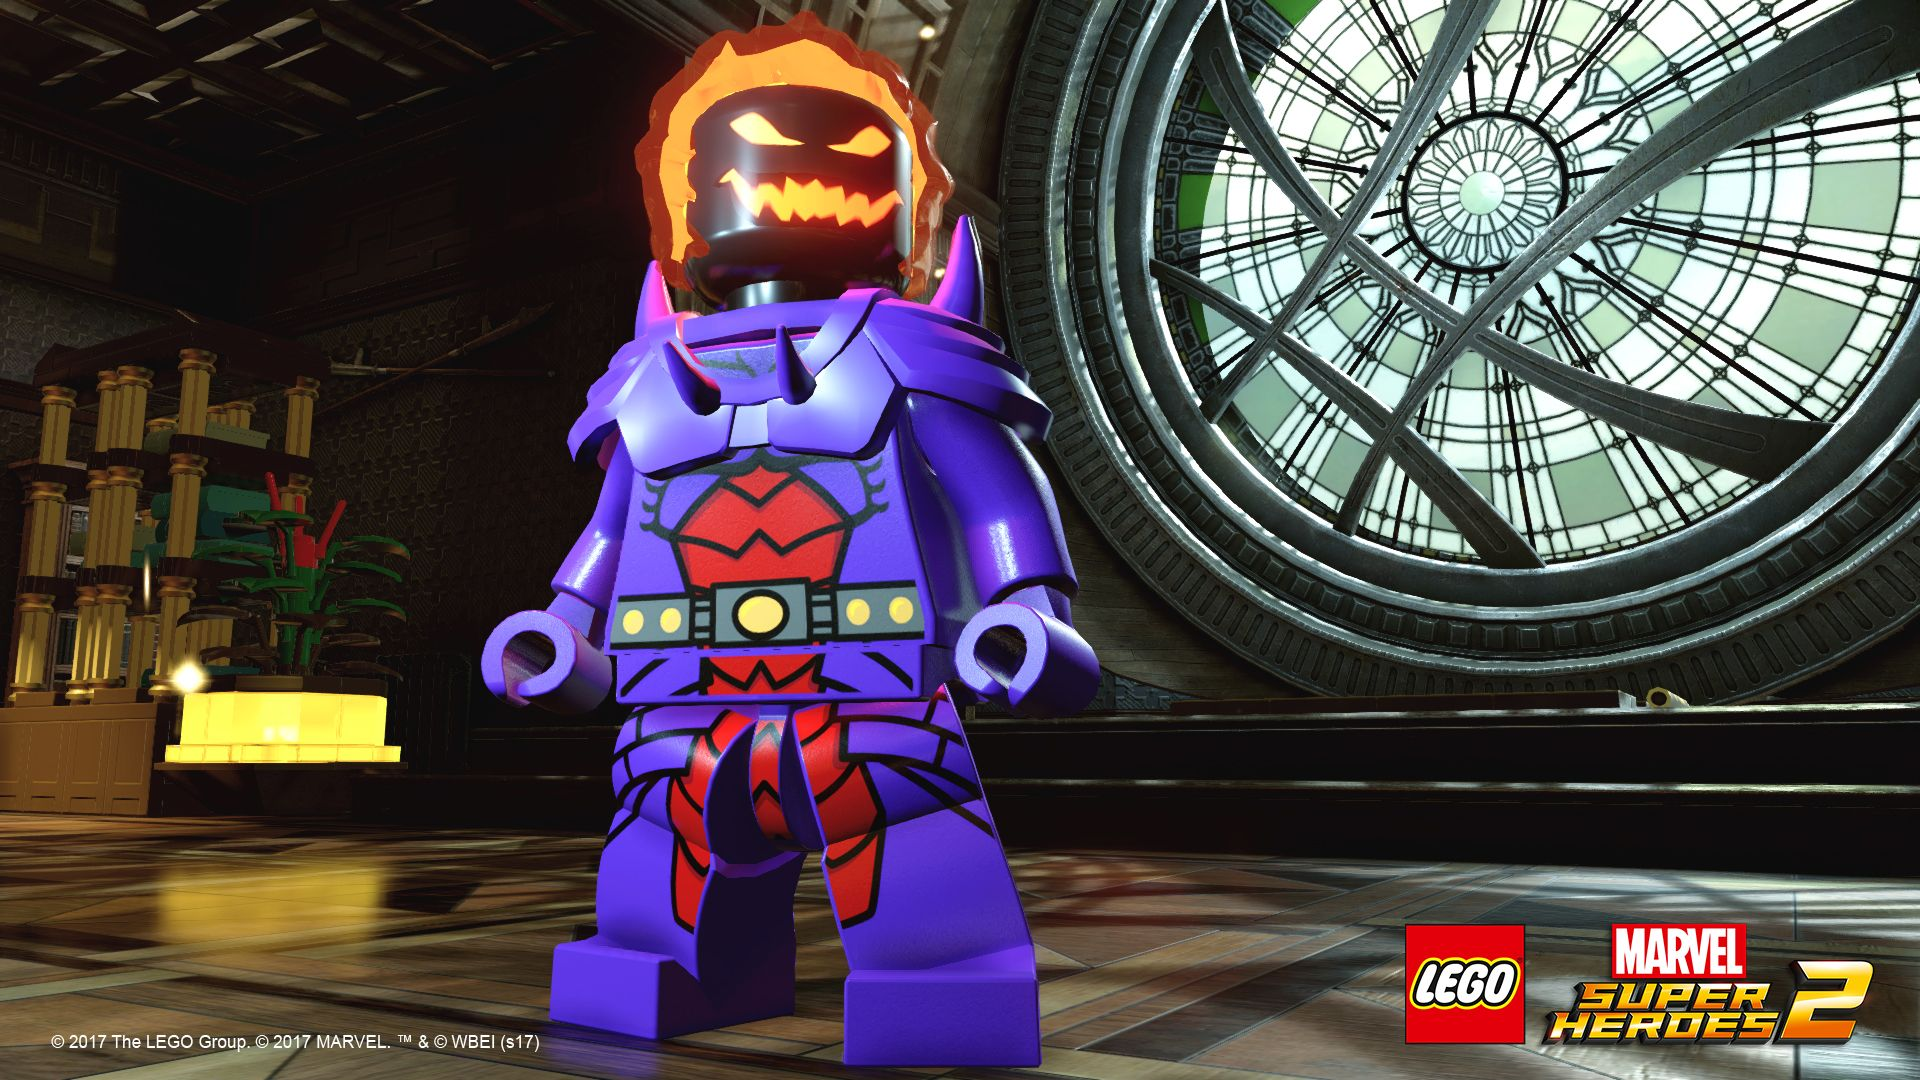 64 Best Free Lego Marvel Super Heroes Wallpapers Wallpaperaccess